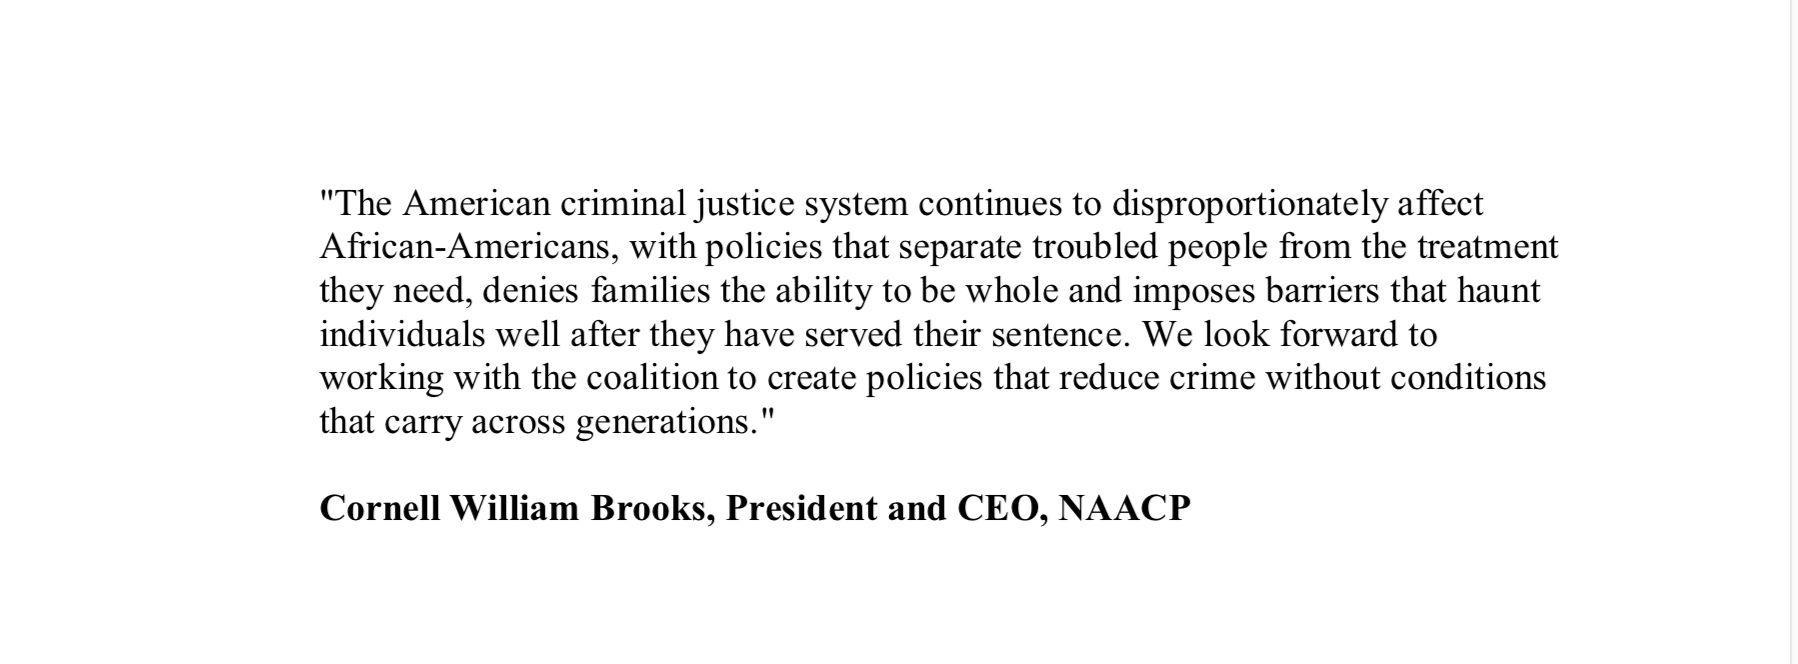 NAACP Quote.png